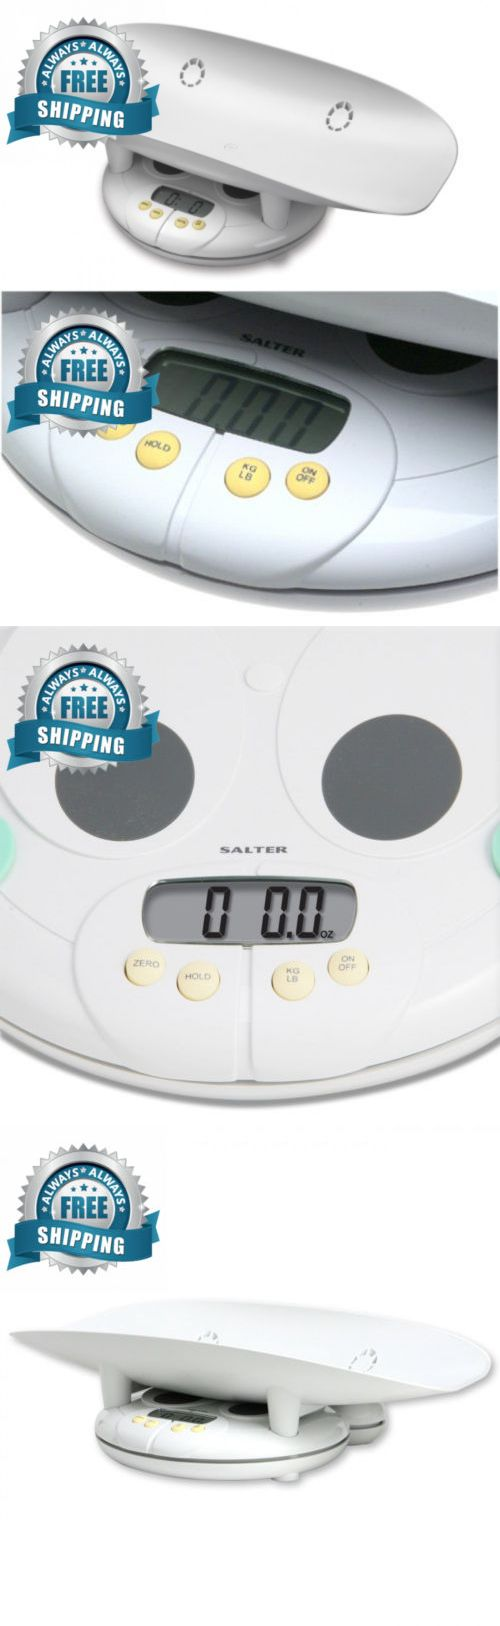 Baby Scales 117016: Salter Digital Baby And Toddler Weighing Scale -> BUY IT NOW ONLY: $59.9 on eBay!